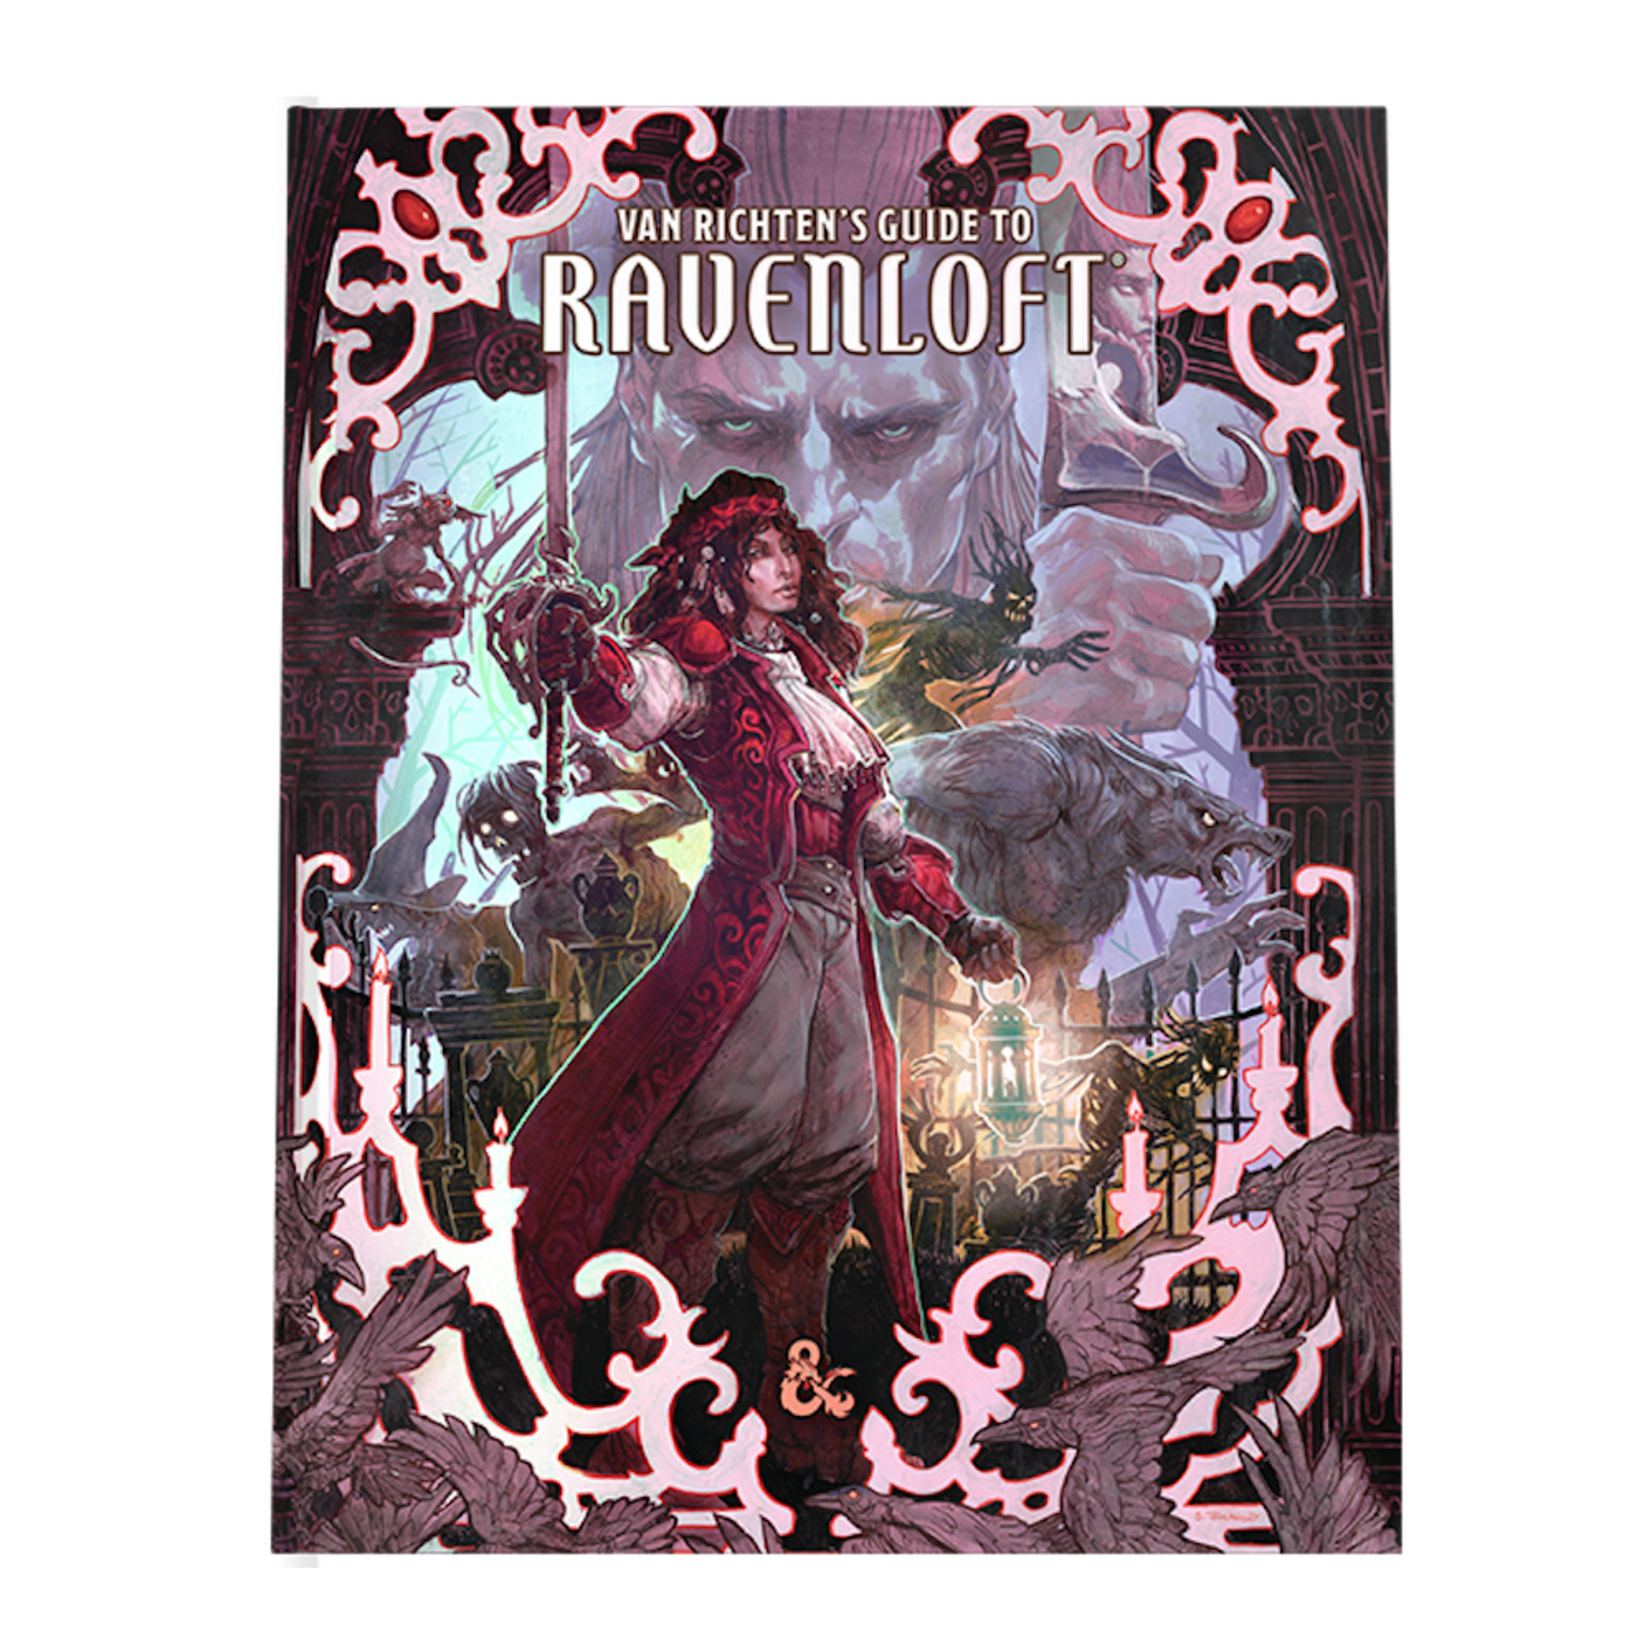 Wizards of the Coast Dungeons and Dragons 5th Edition: Van Richten's Guide to Ravenloft ALTERNATE ART COVER (Preorder)